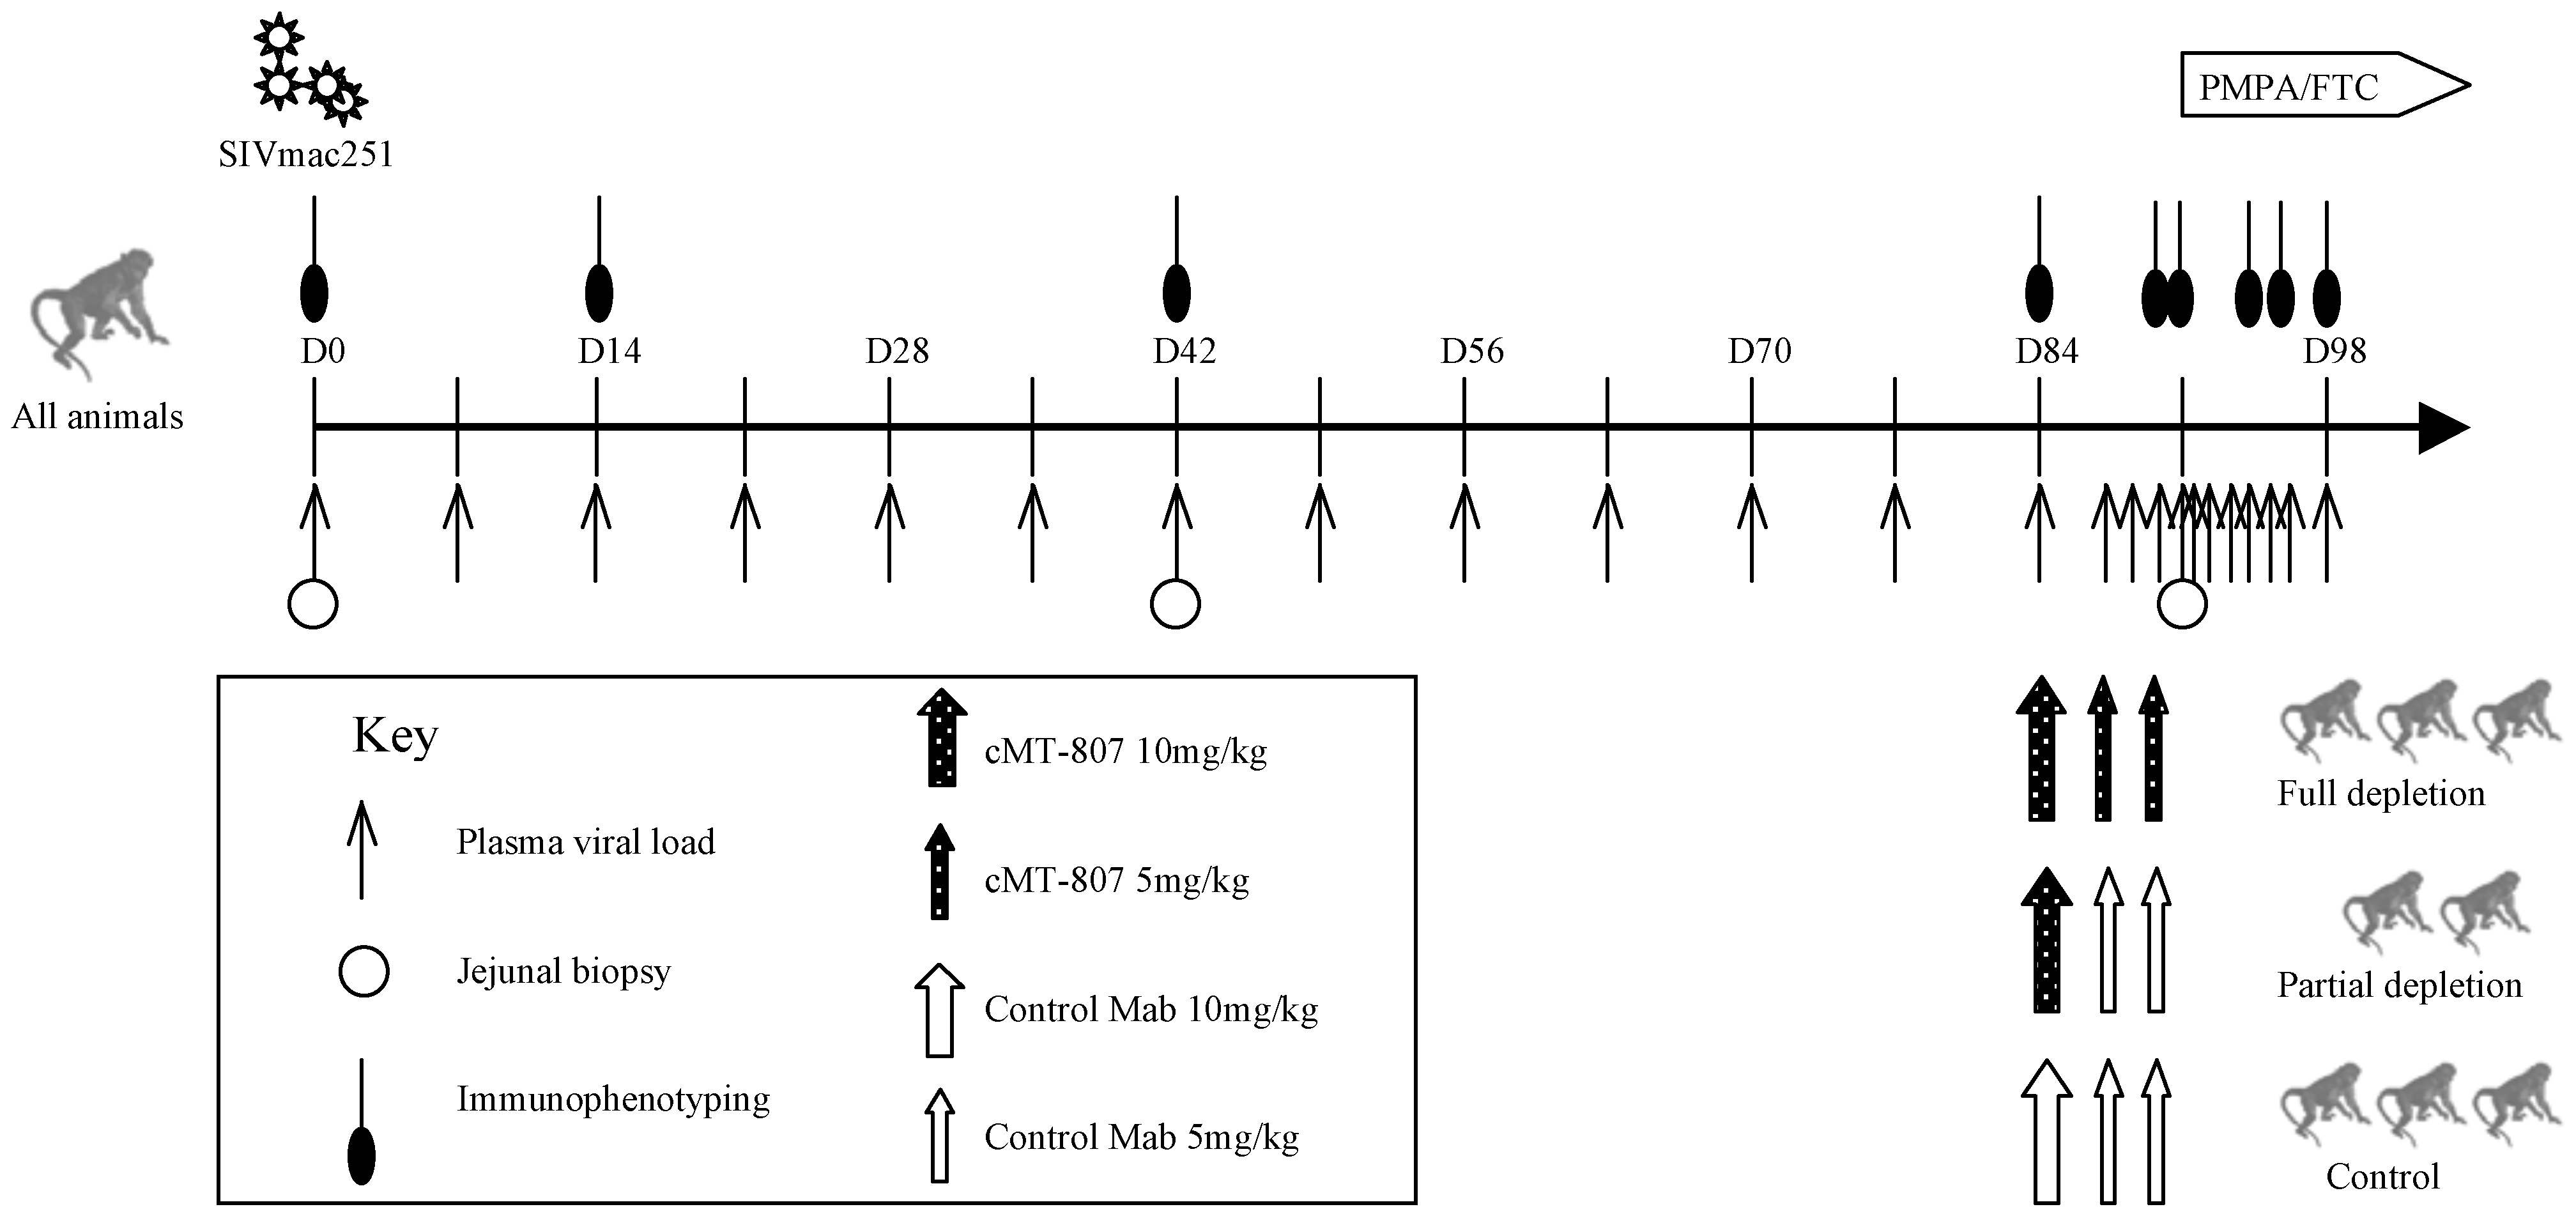 Timeline of experiments.